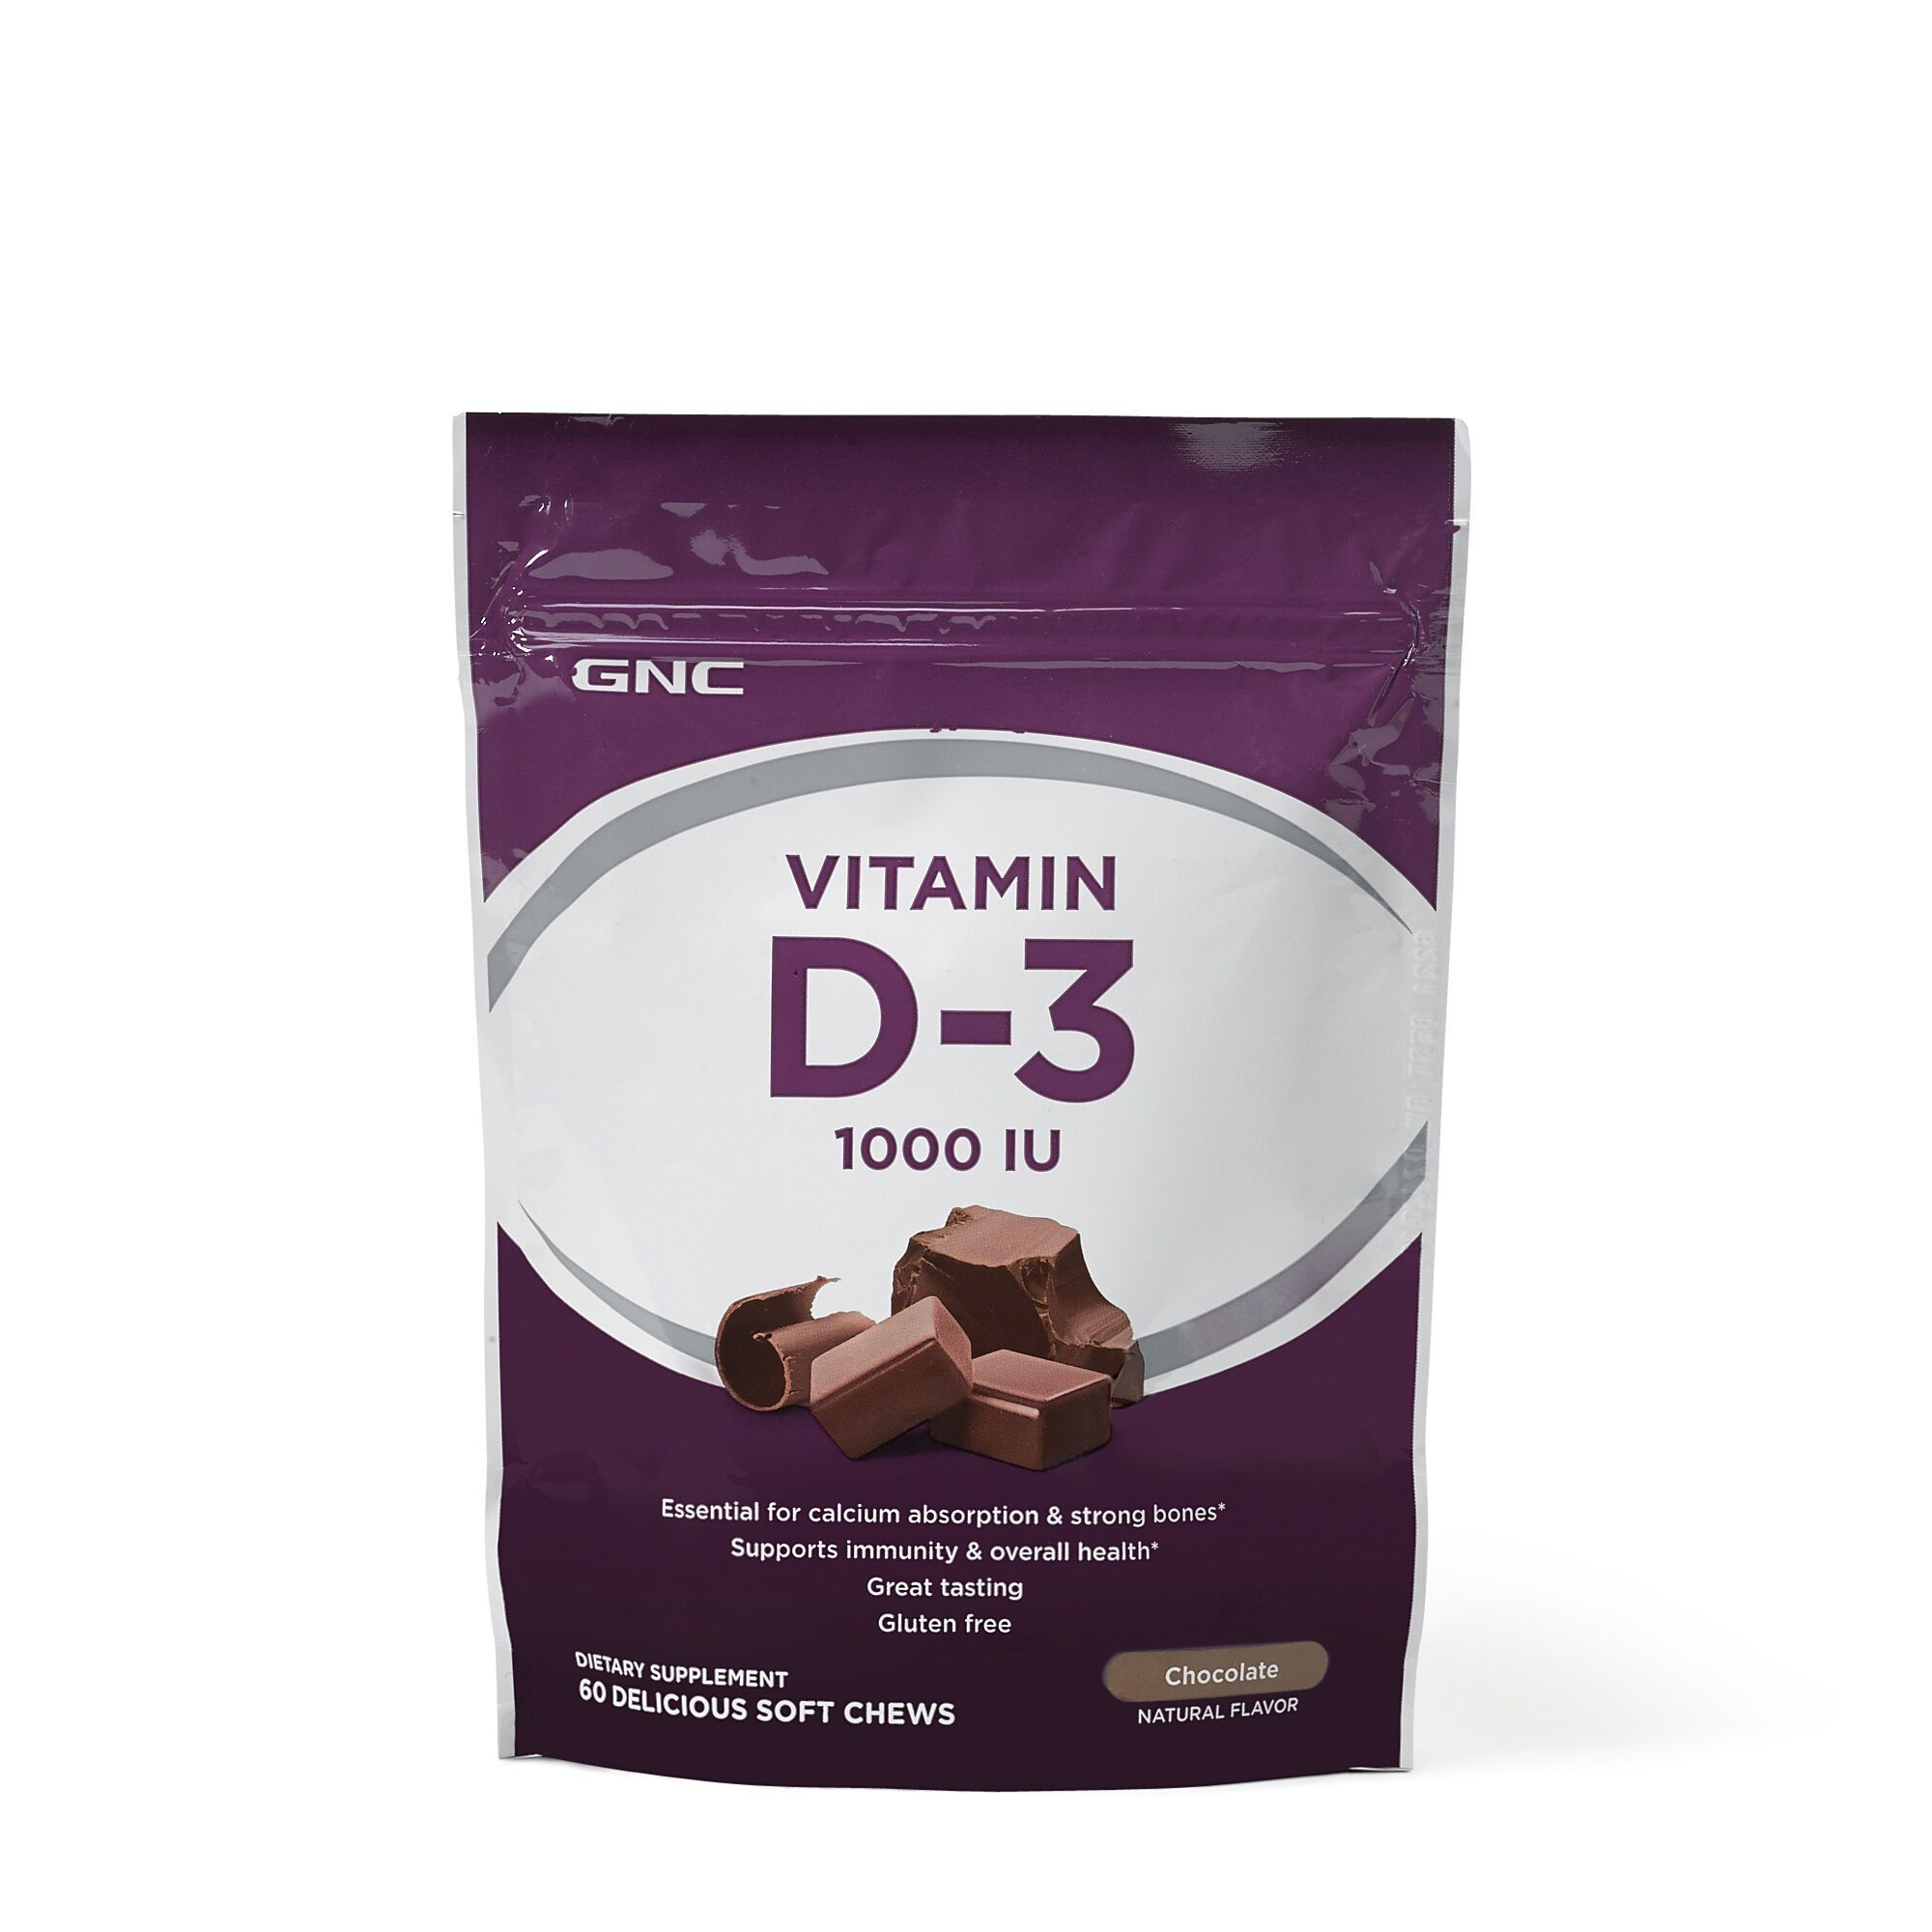 Vitamin Soft Chews D3 1000 Iu Chocolate,Vitamin D3